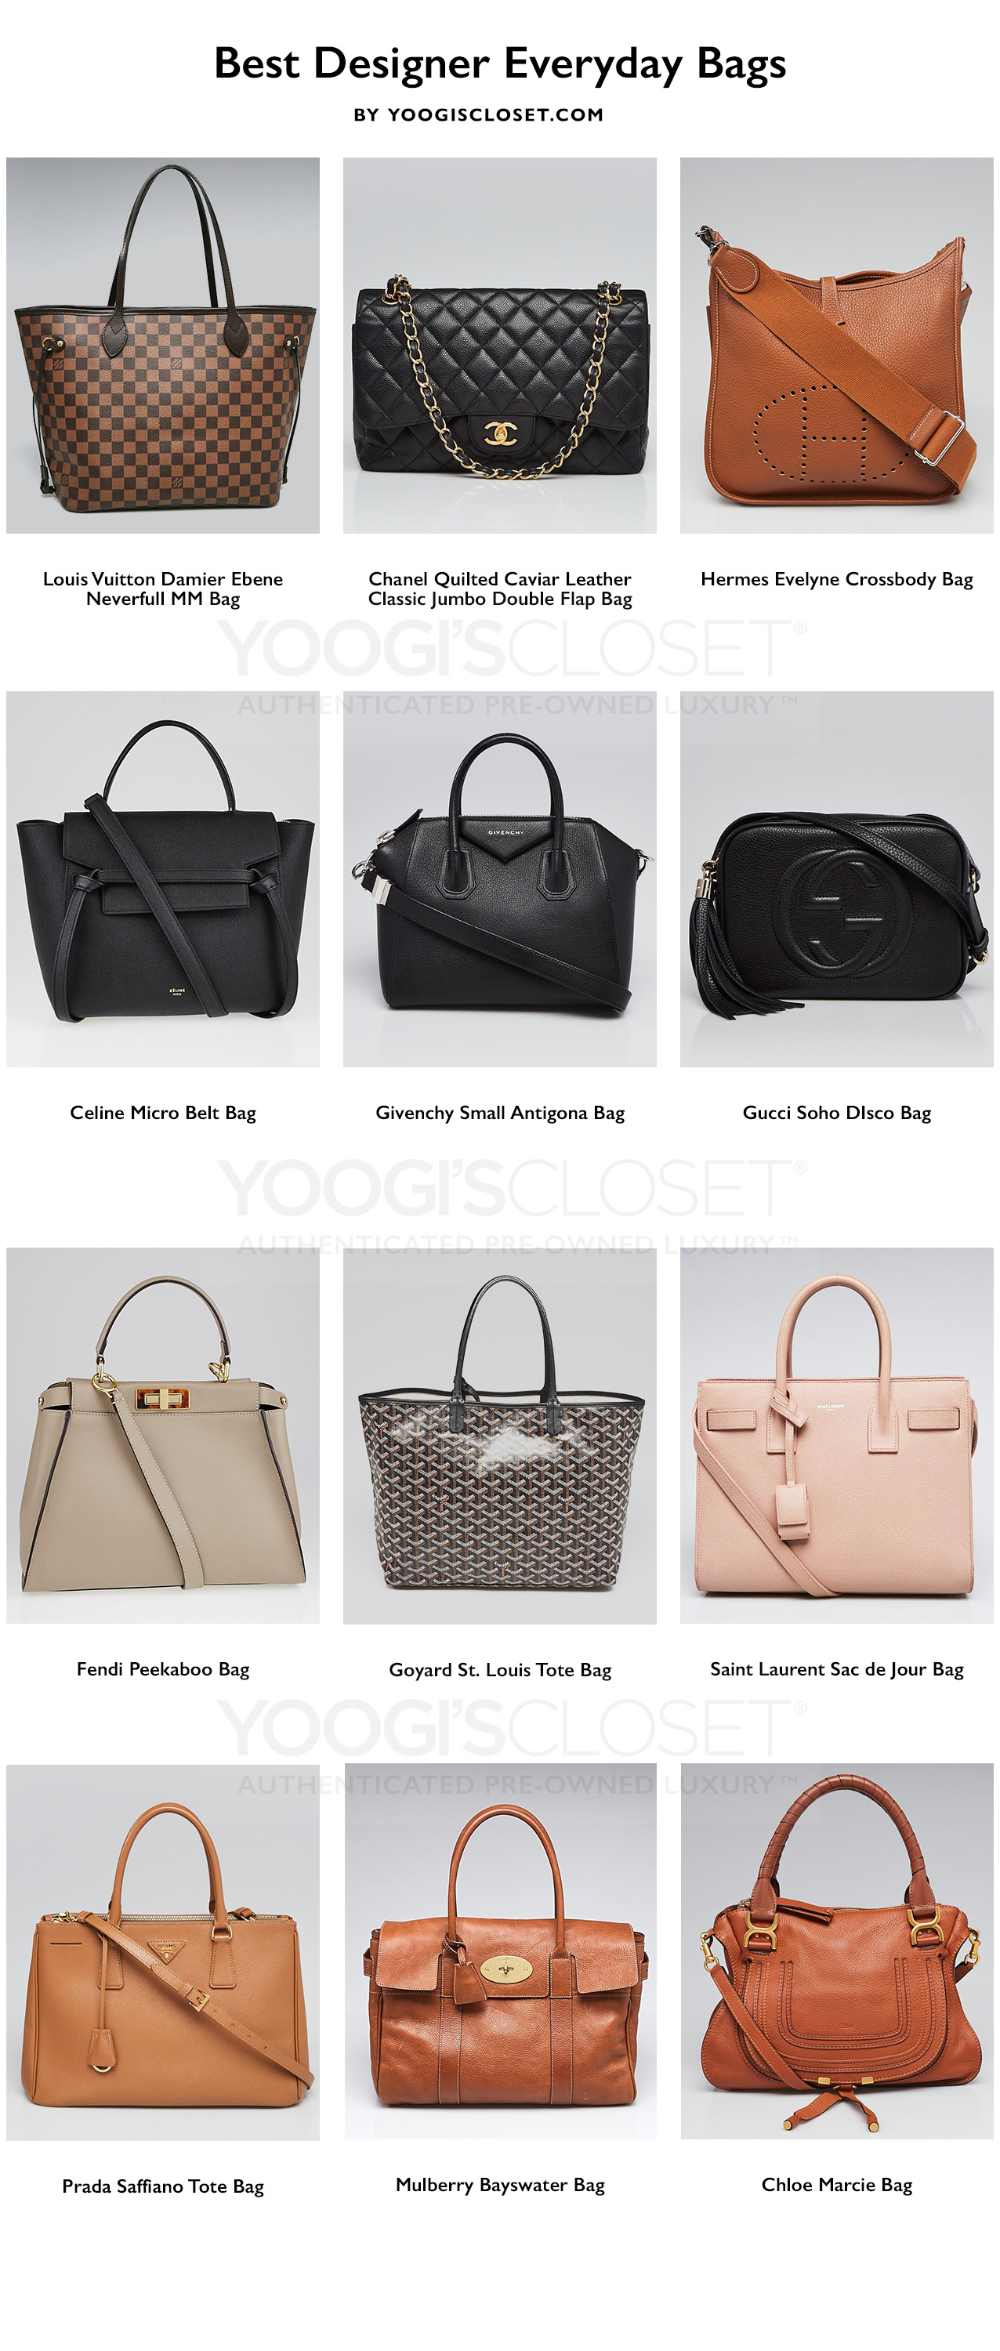 Best Everyday Designer Bags To Invest